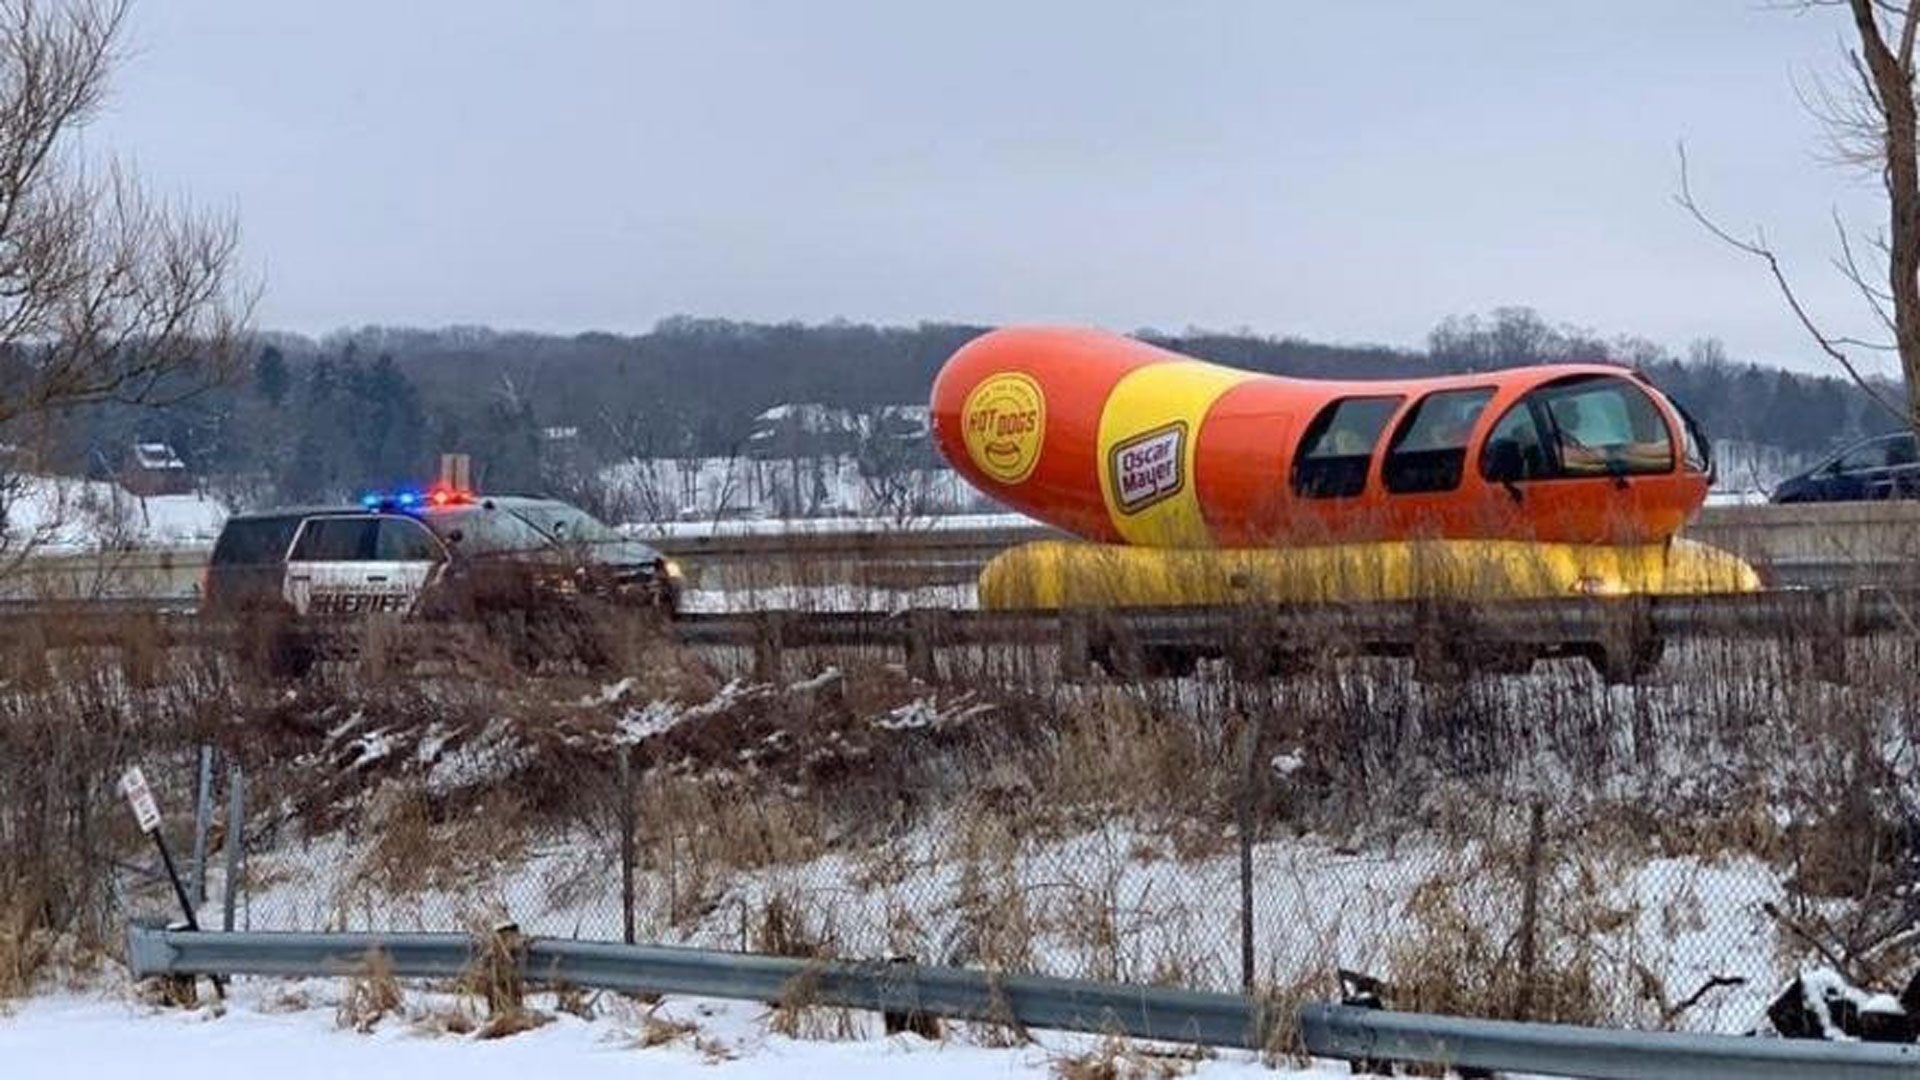 Wienermobile pulled over